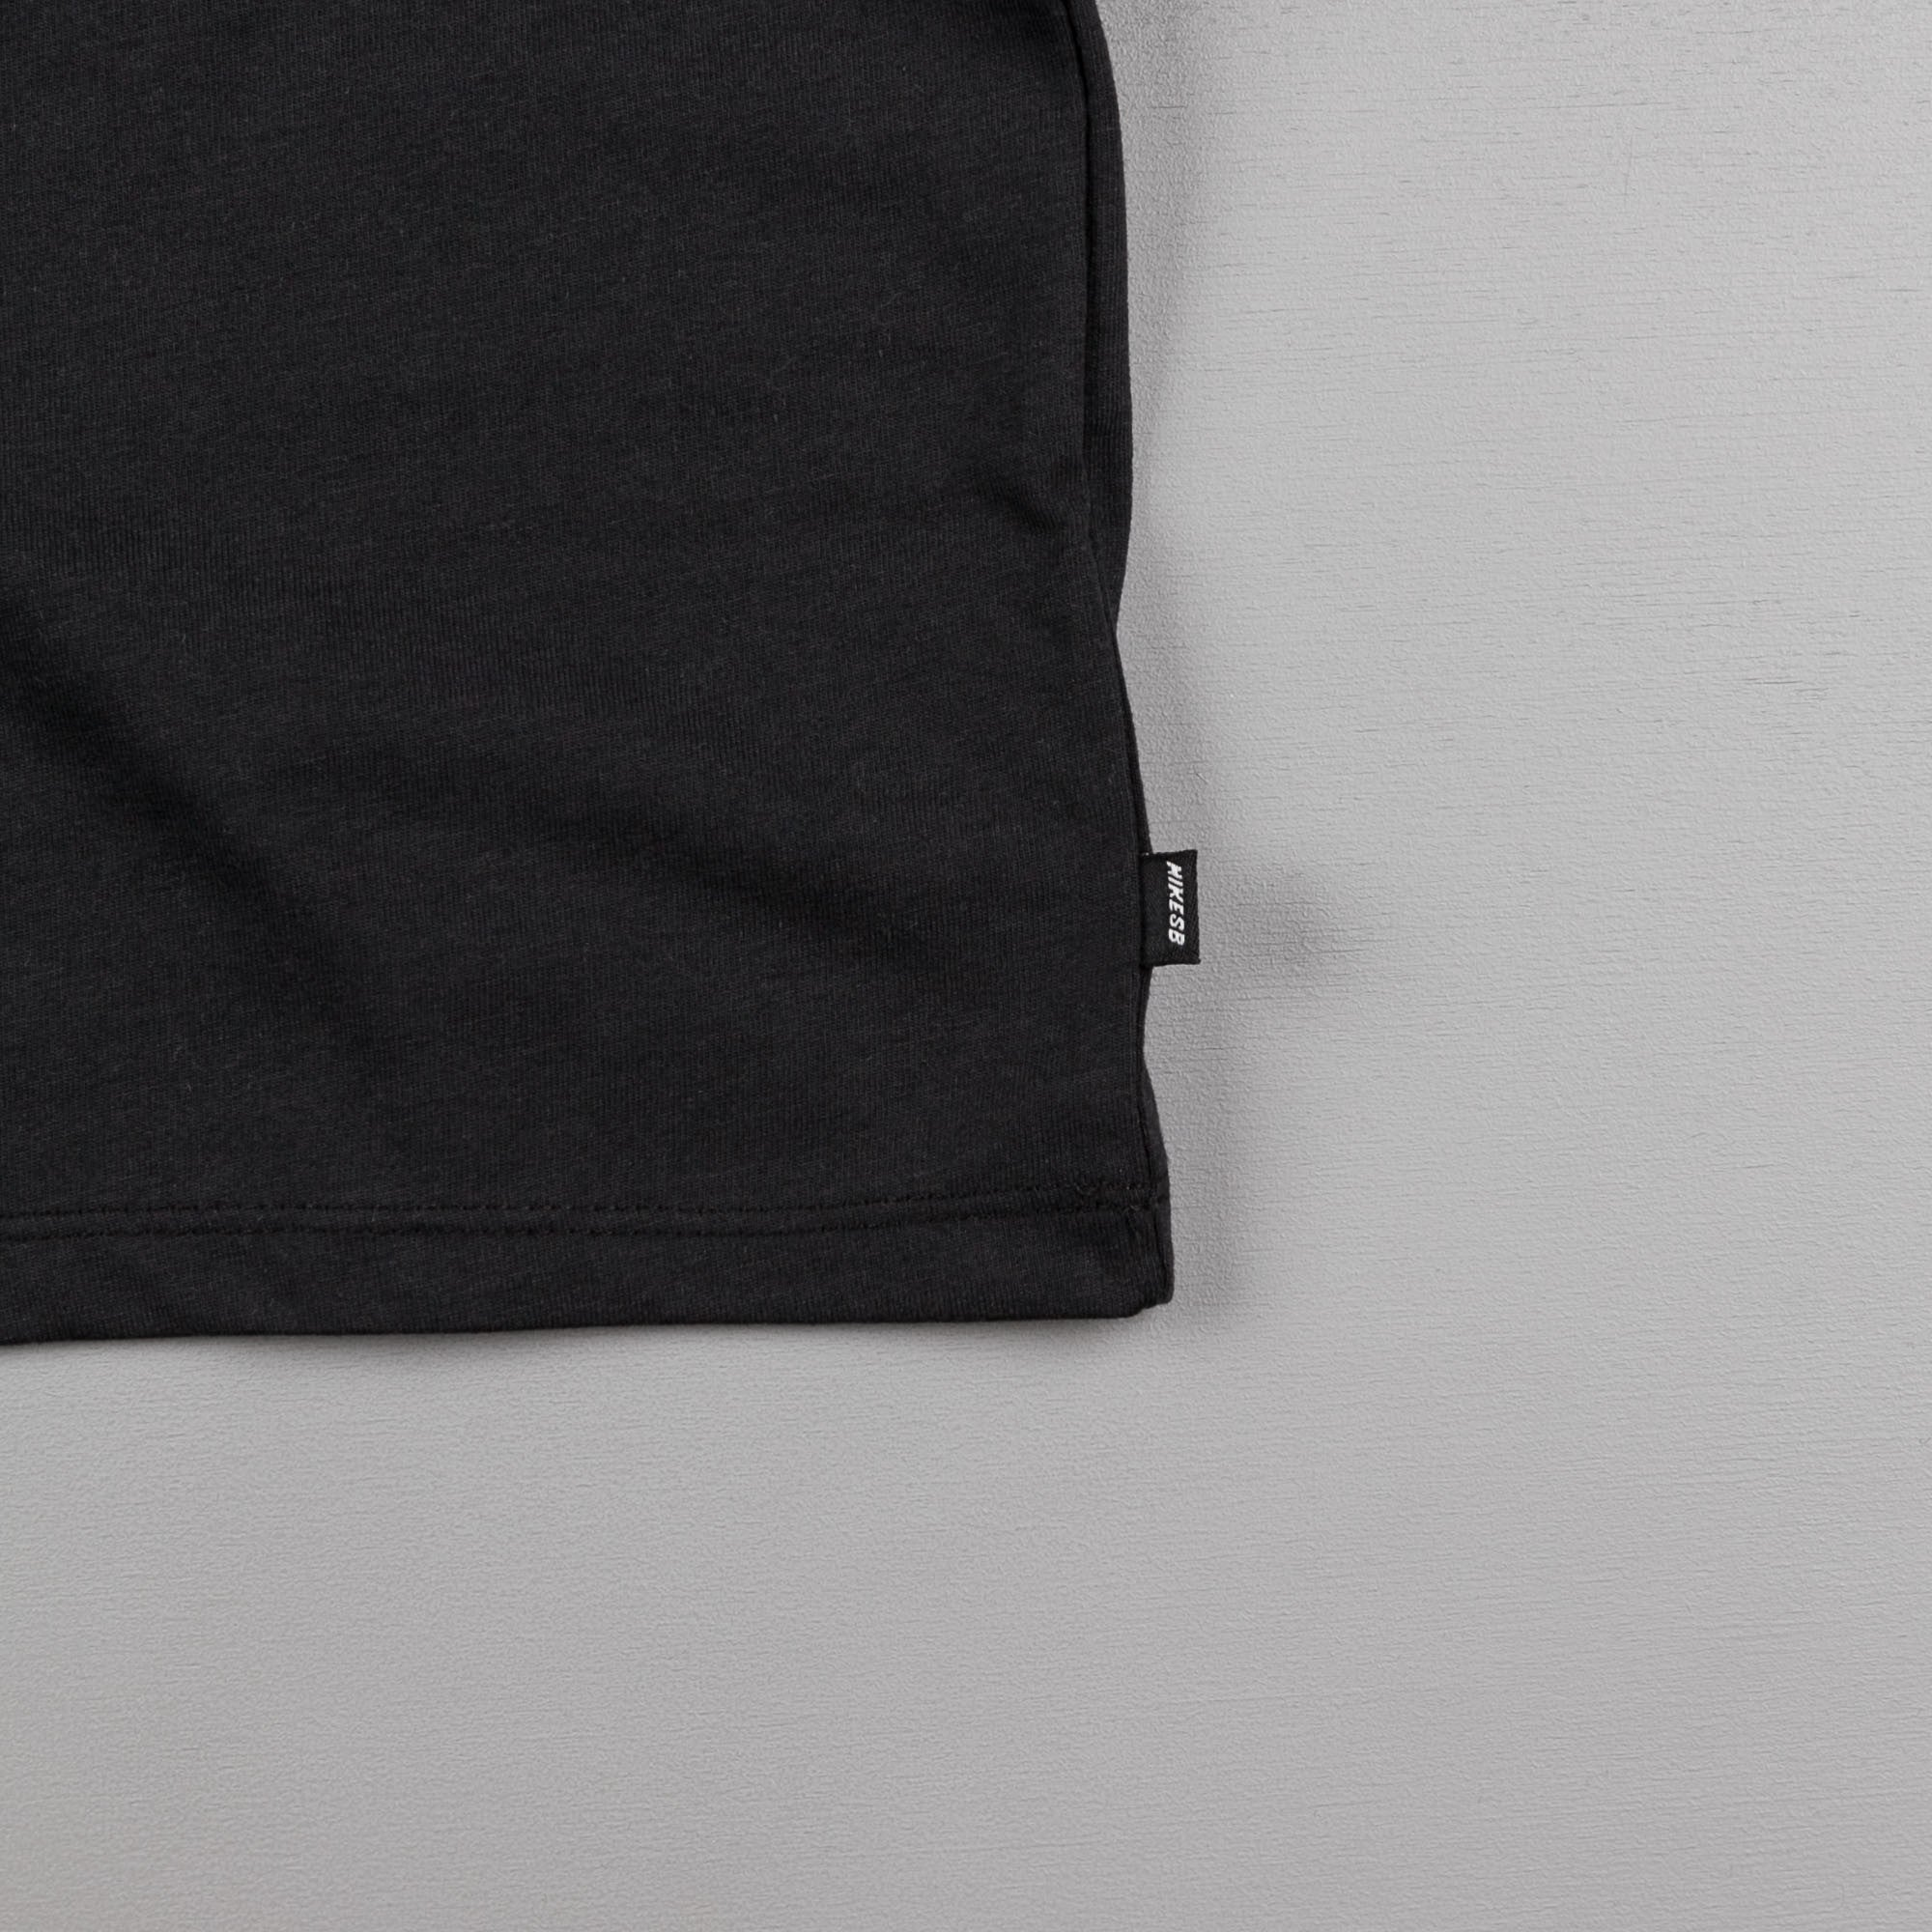 Nike SB Skunk T-Shirt - Black / Black / White